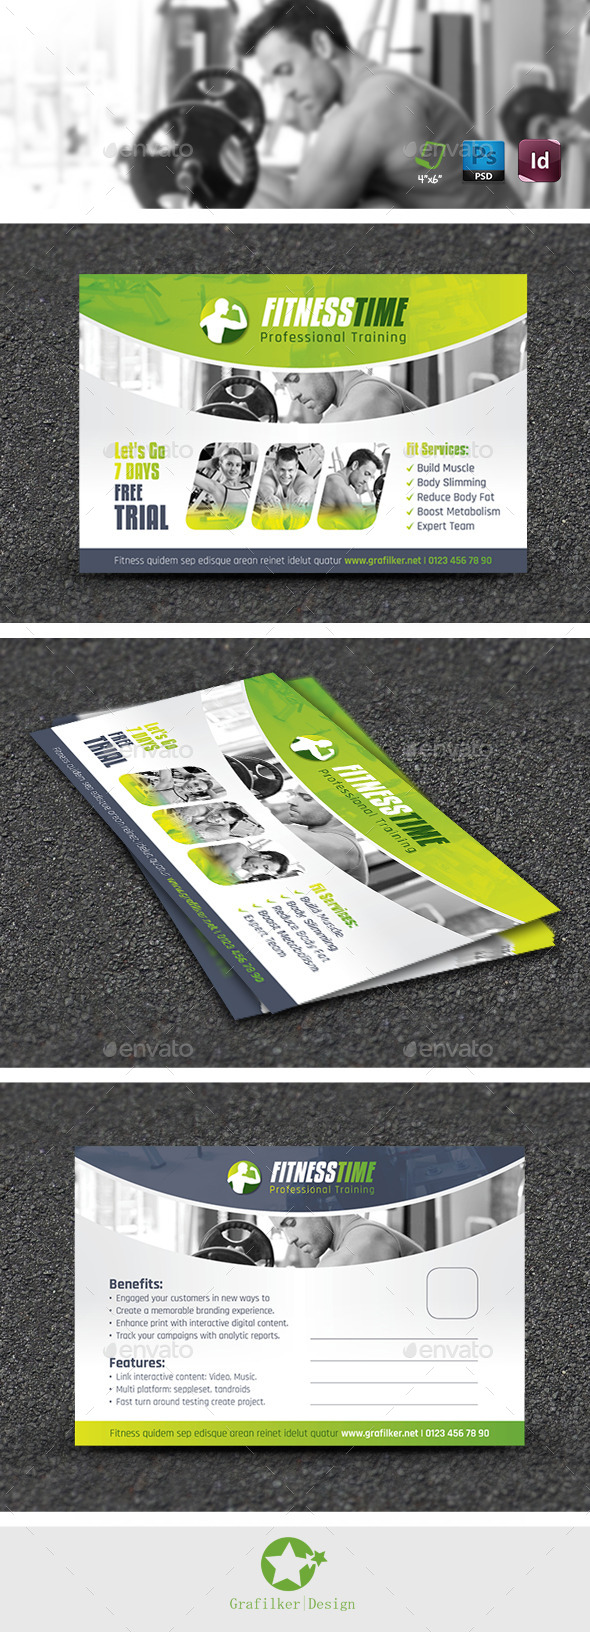 Fitness Salon Postcard Templates - Cards & Invites Print Templates